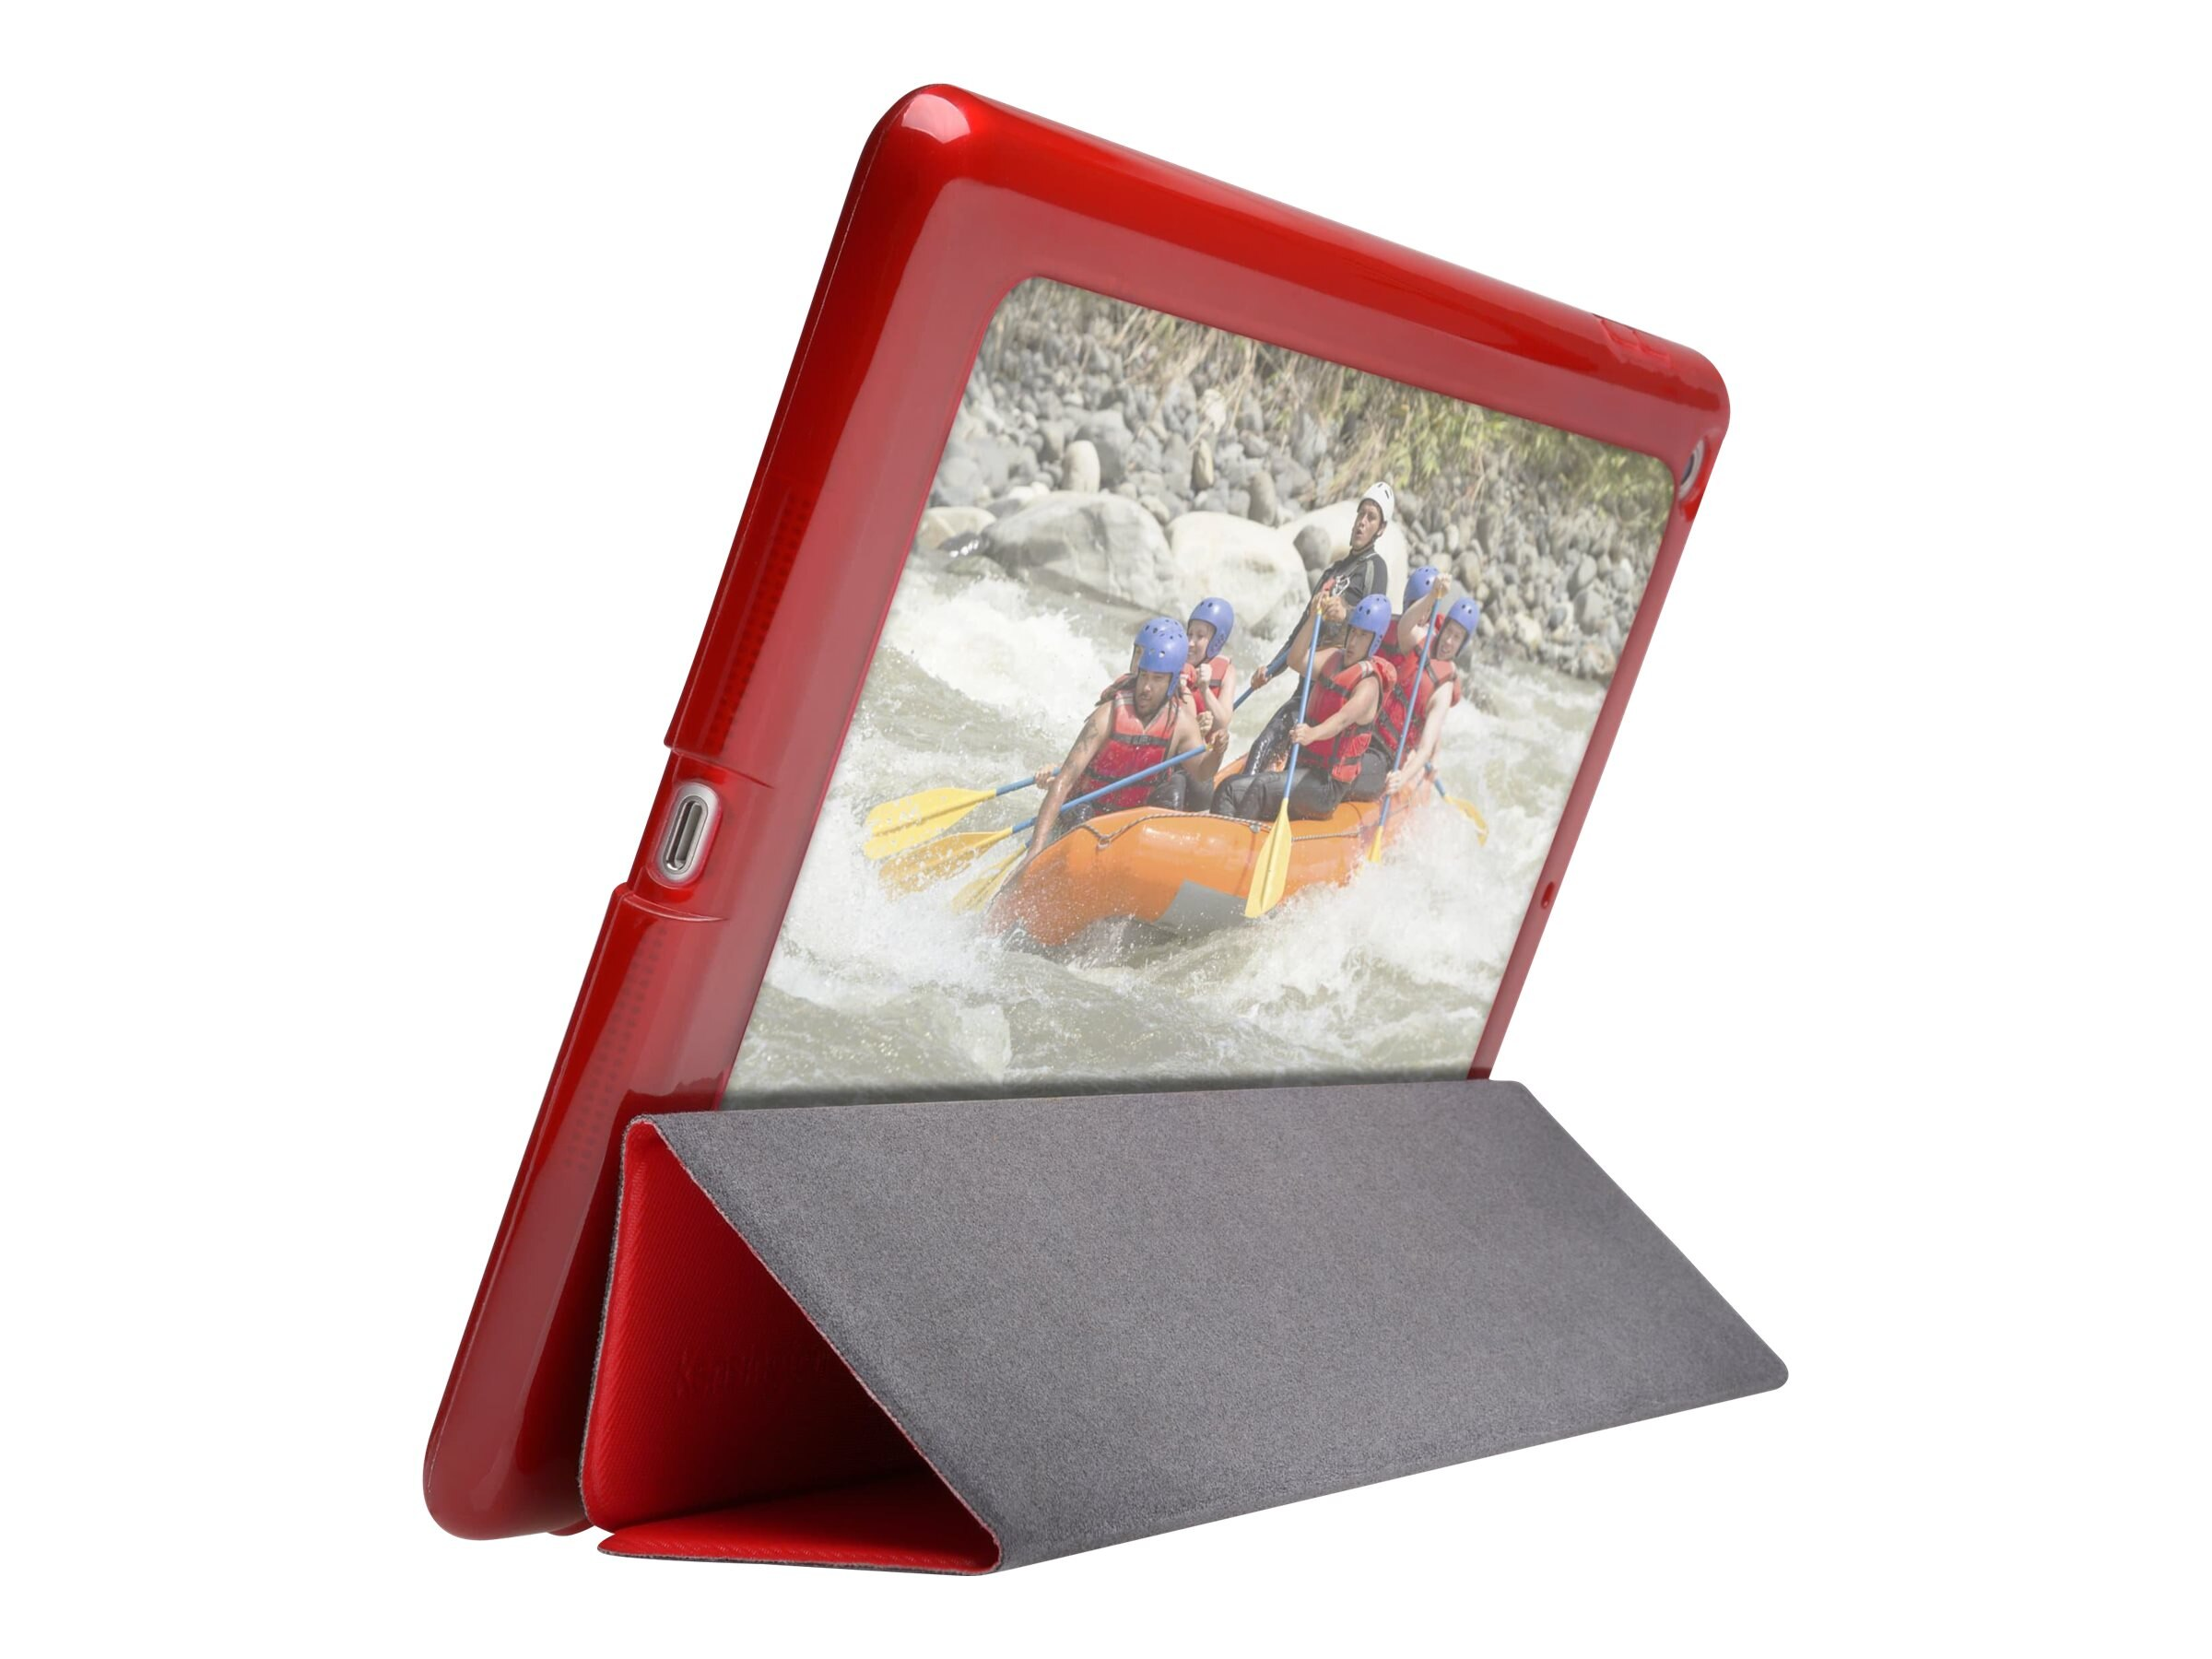 Kensington Customize Me Case for iPad Air 2, Red